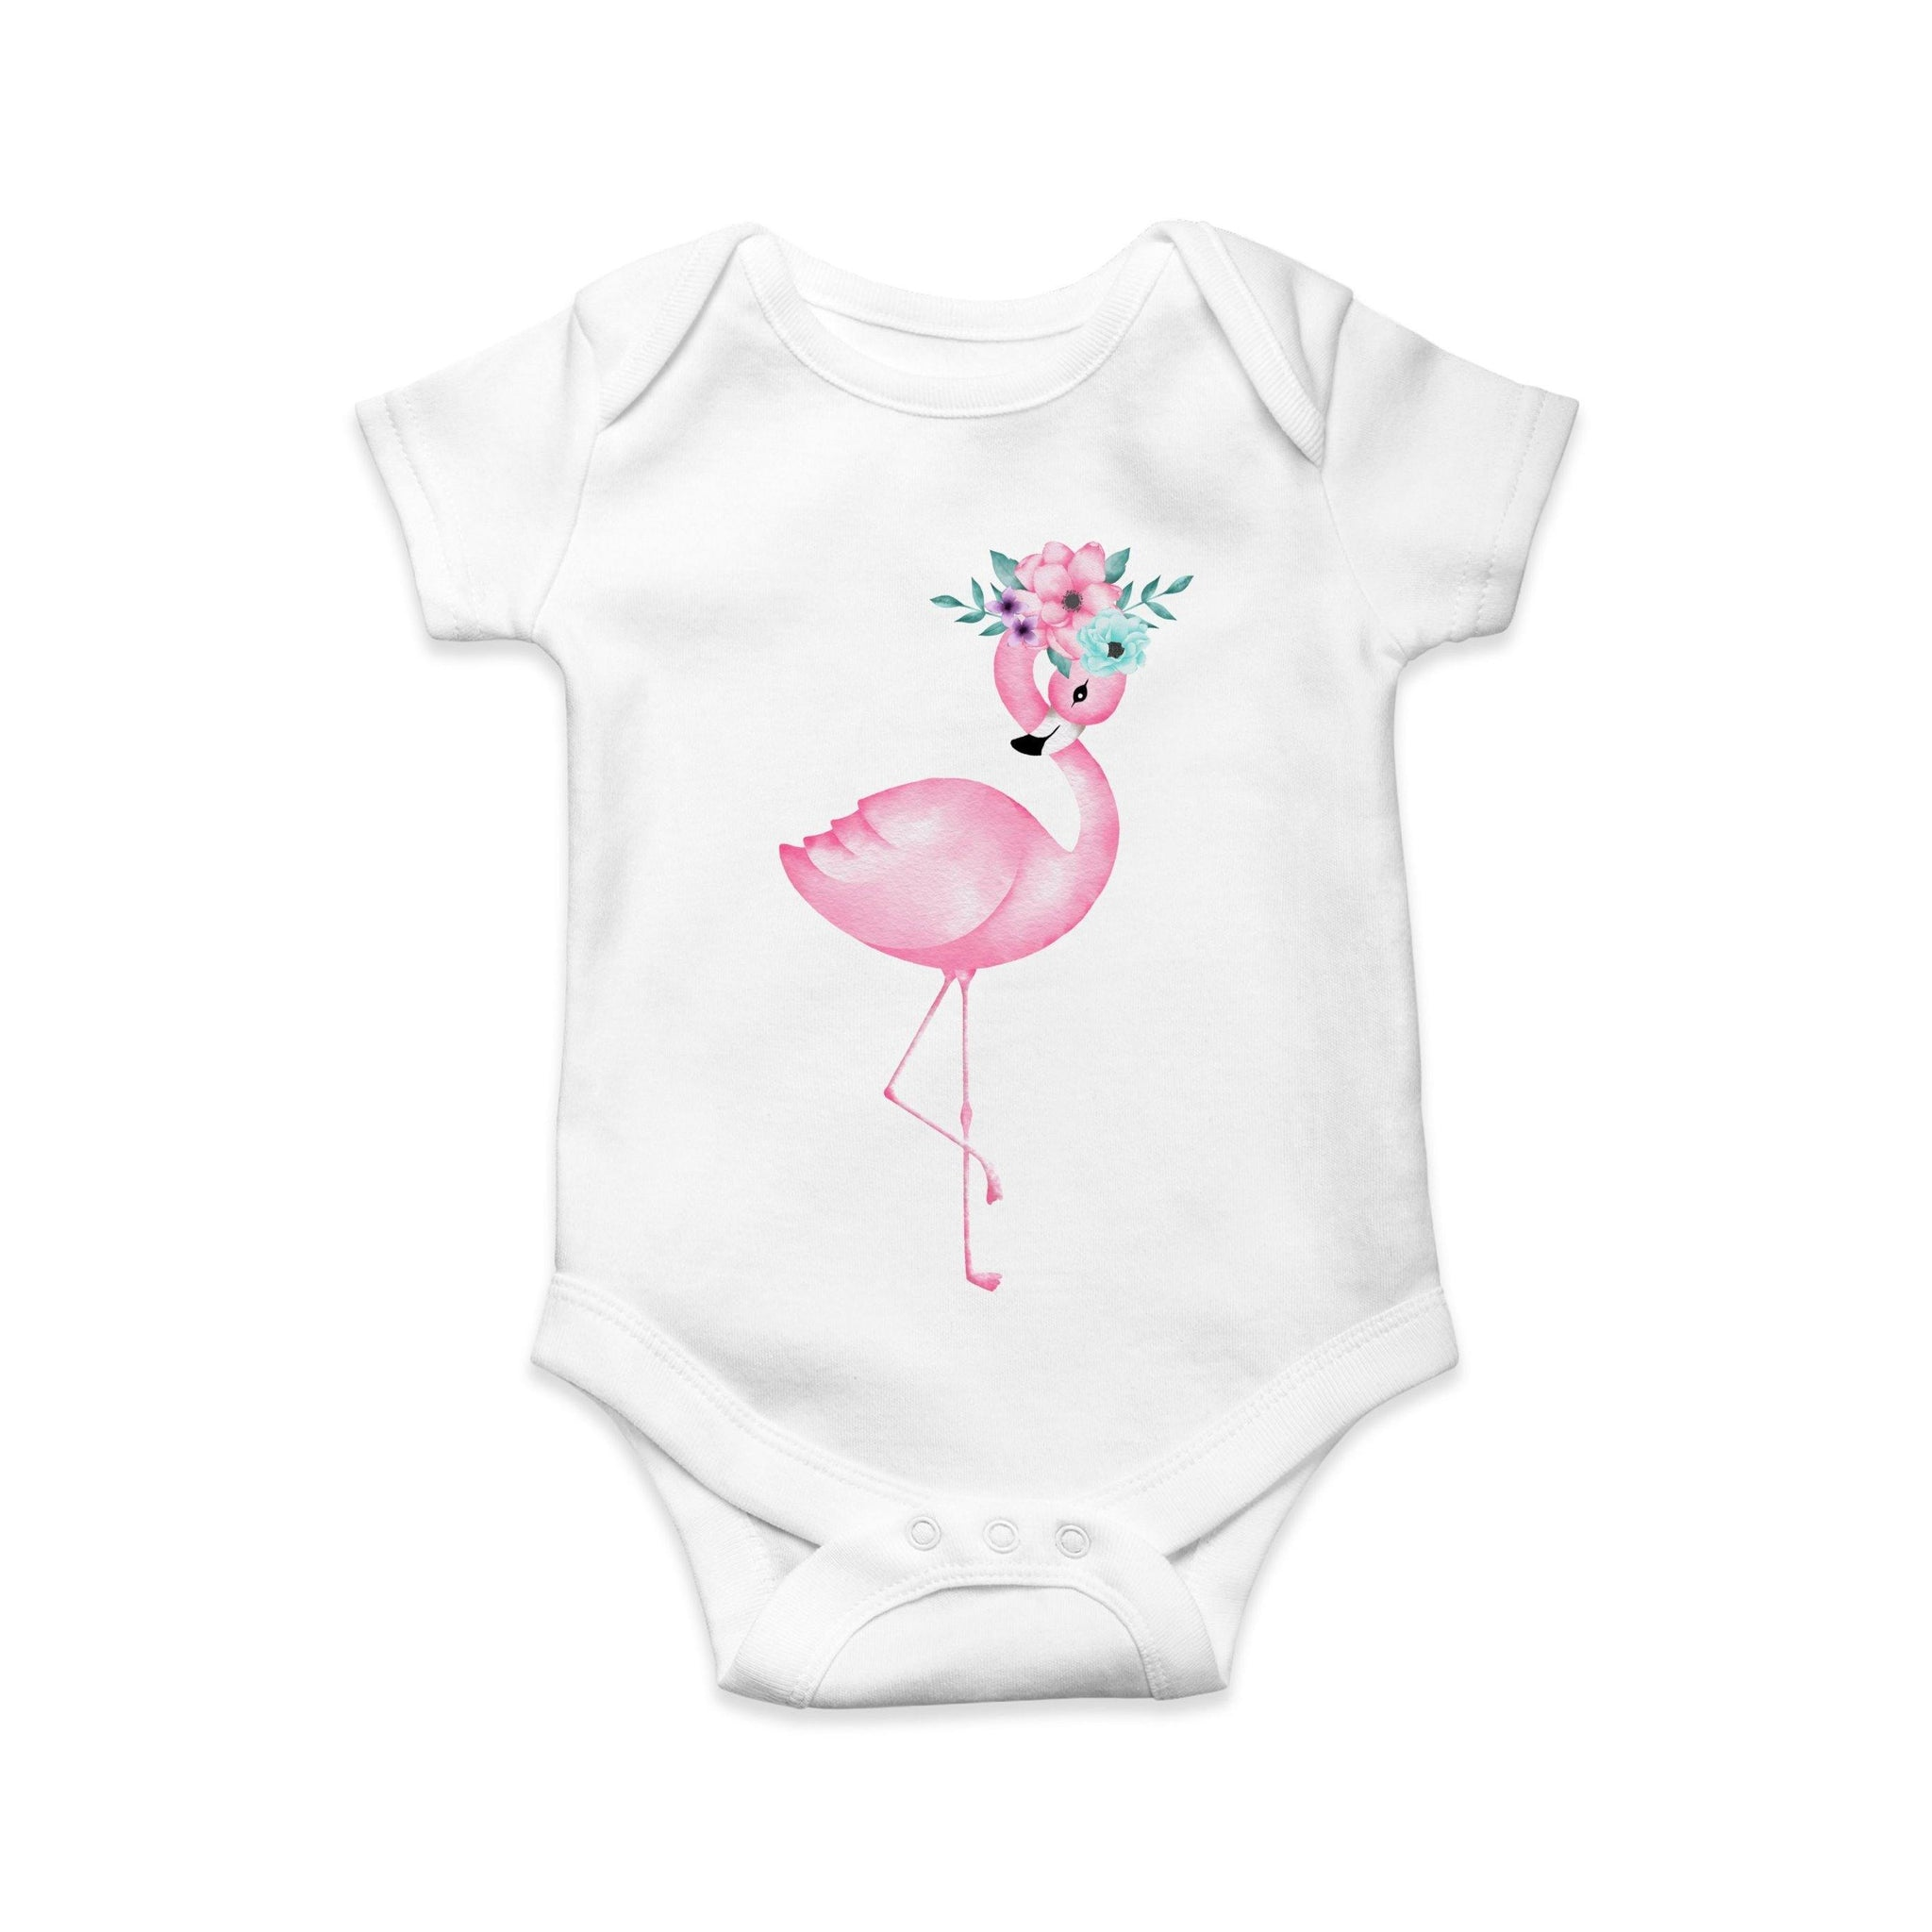 Flamingo and flower baby body suit - Sew Tilley